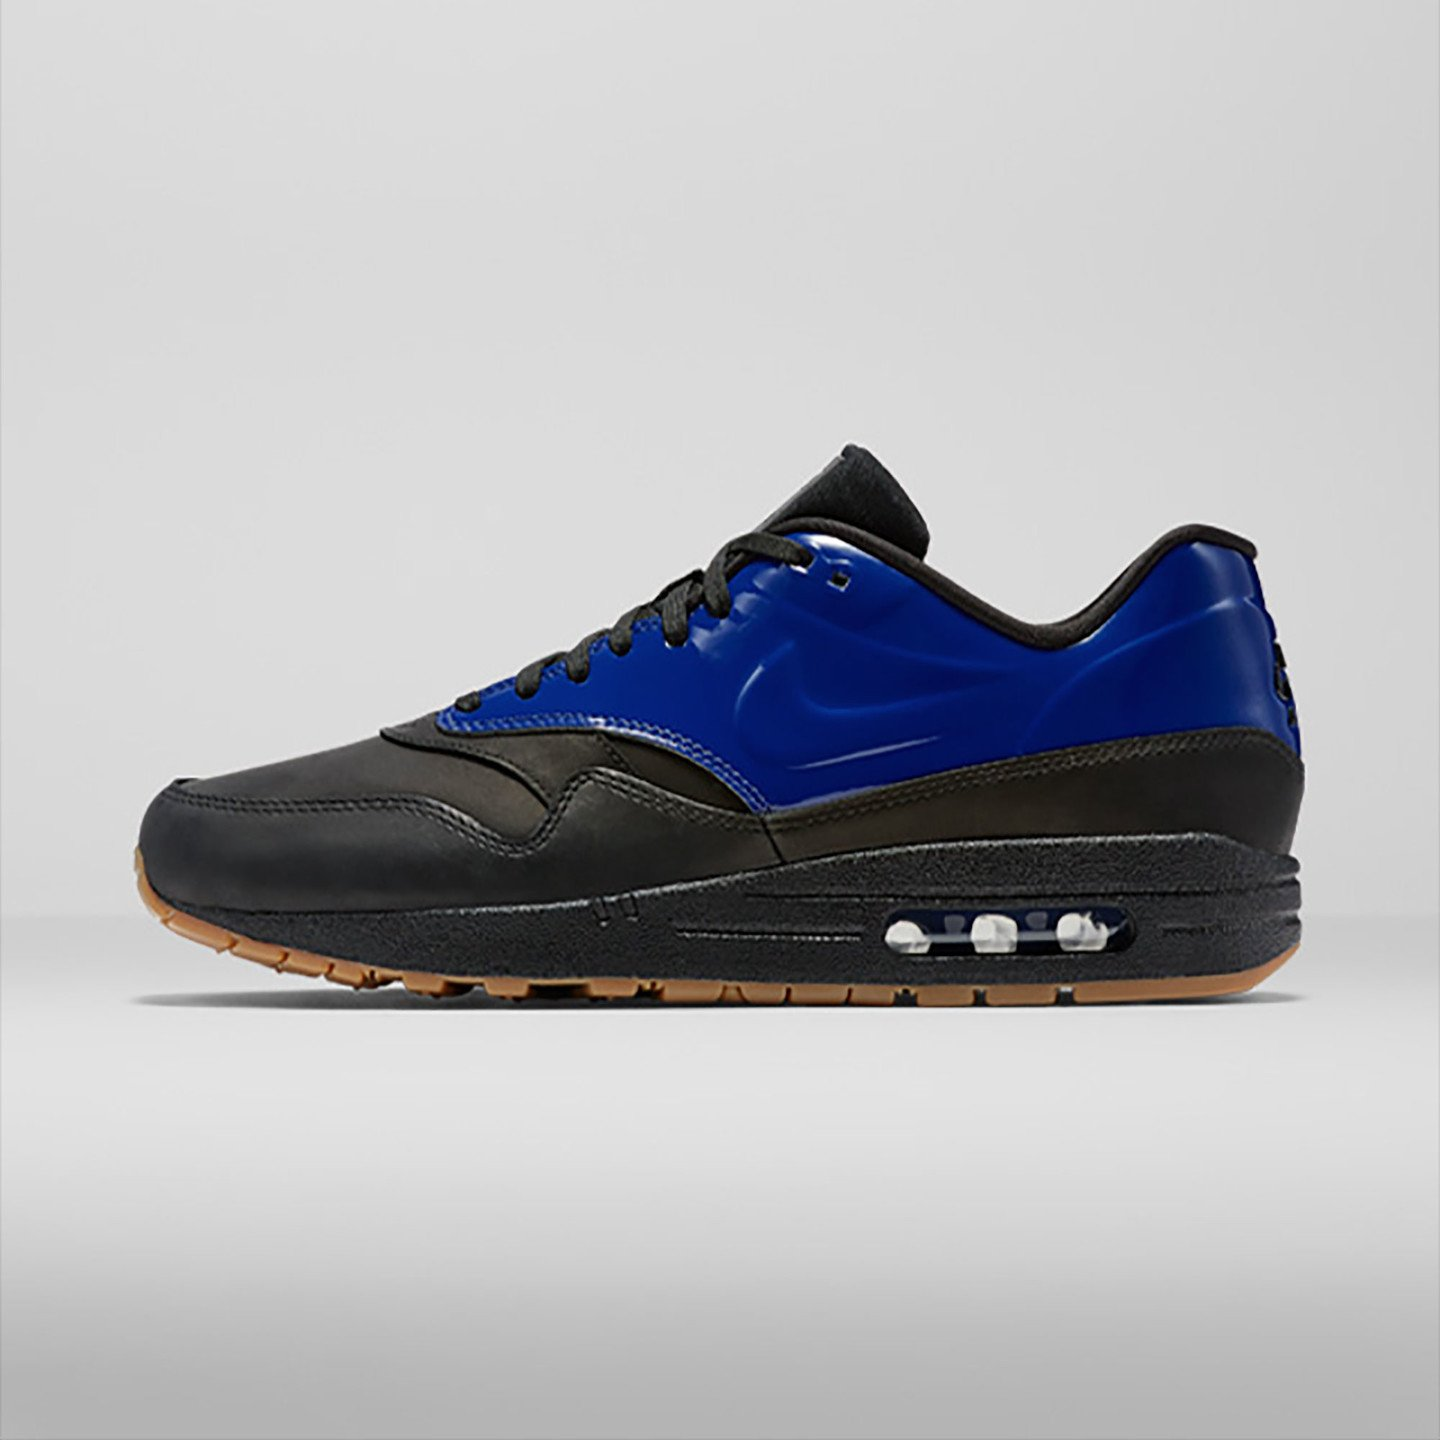 Nike Air Max 1 Vac Tech QS Deep Royal Blue / Black 831113-400-45